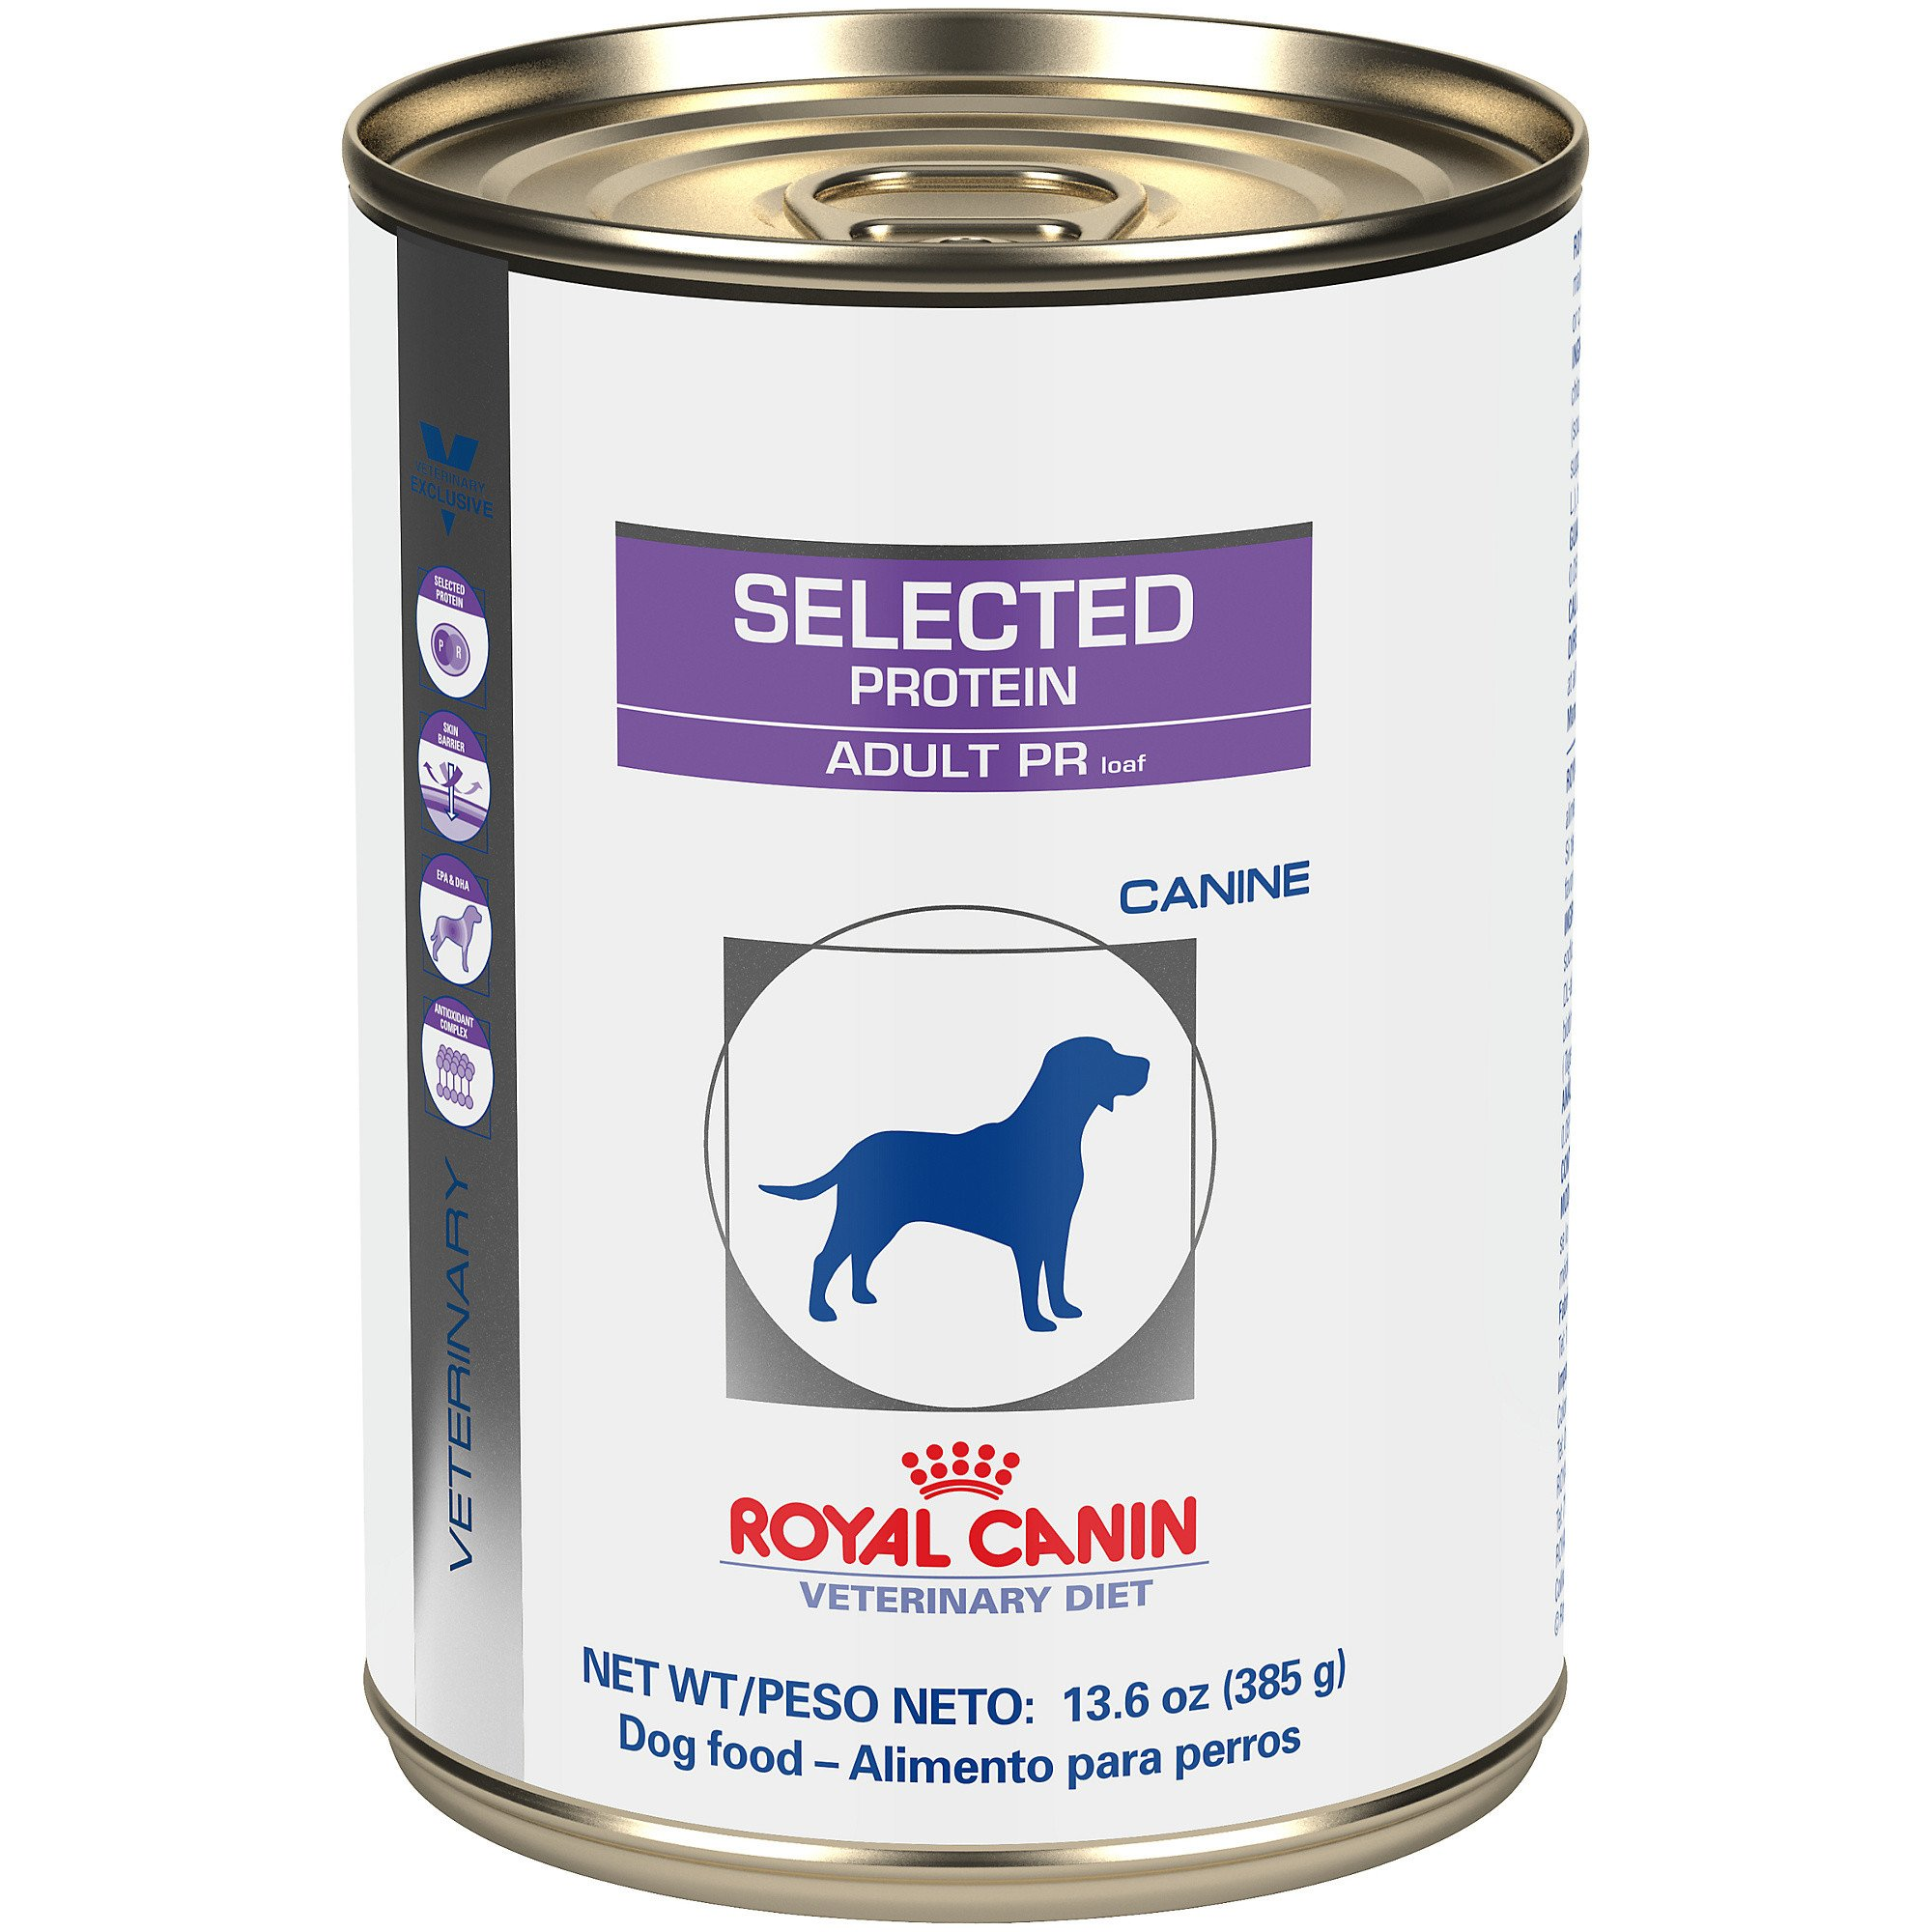 Royal Canin Selected Protein Canned Dog Food